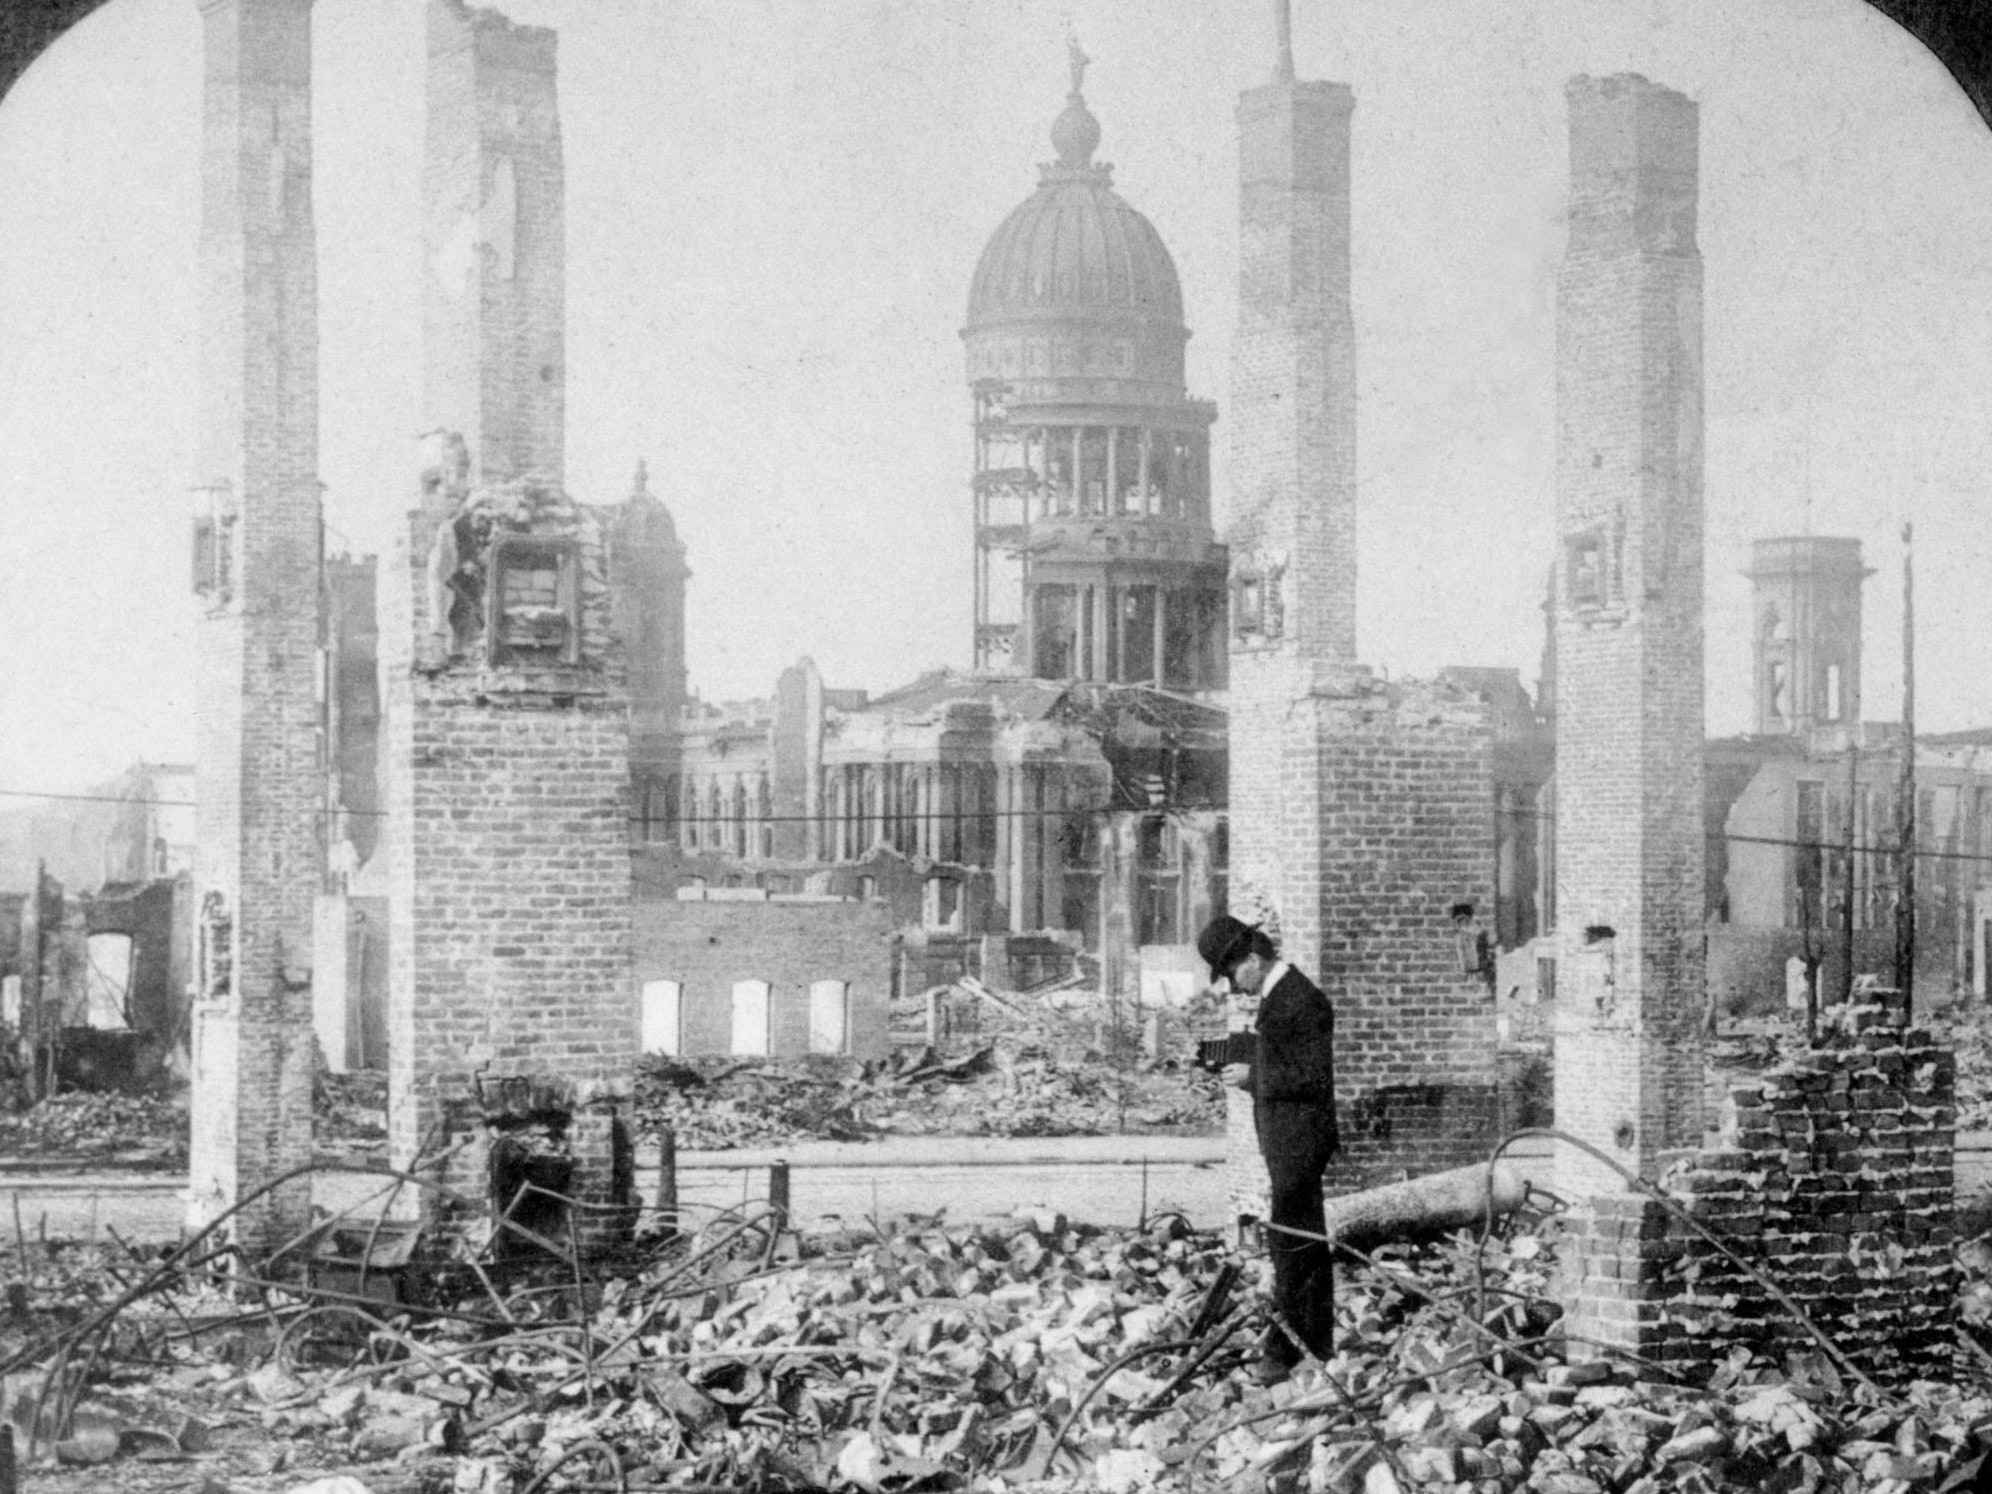 The California Academy of Sciences Hero Versus the 1906 San Francisco Earthquake